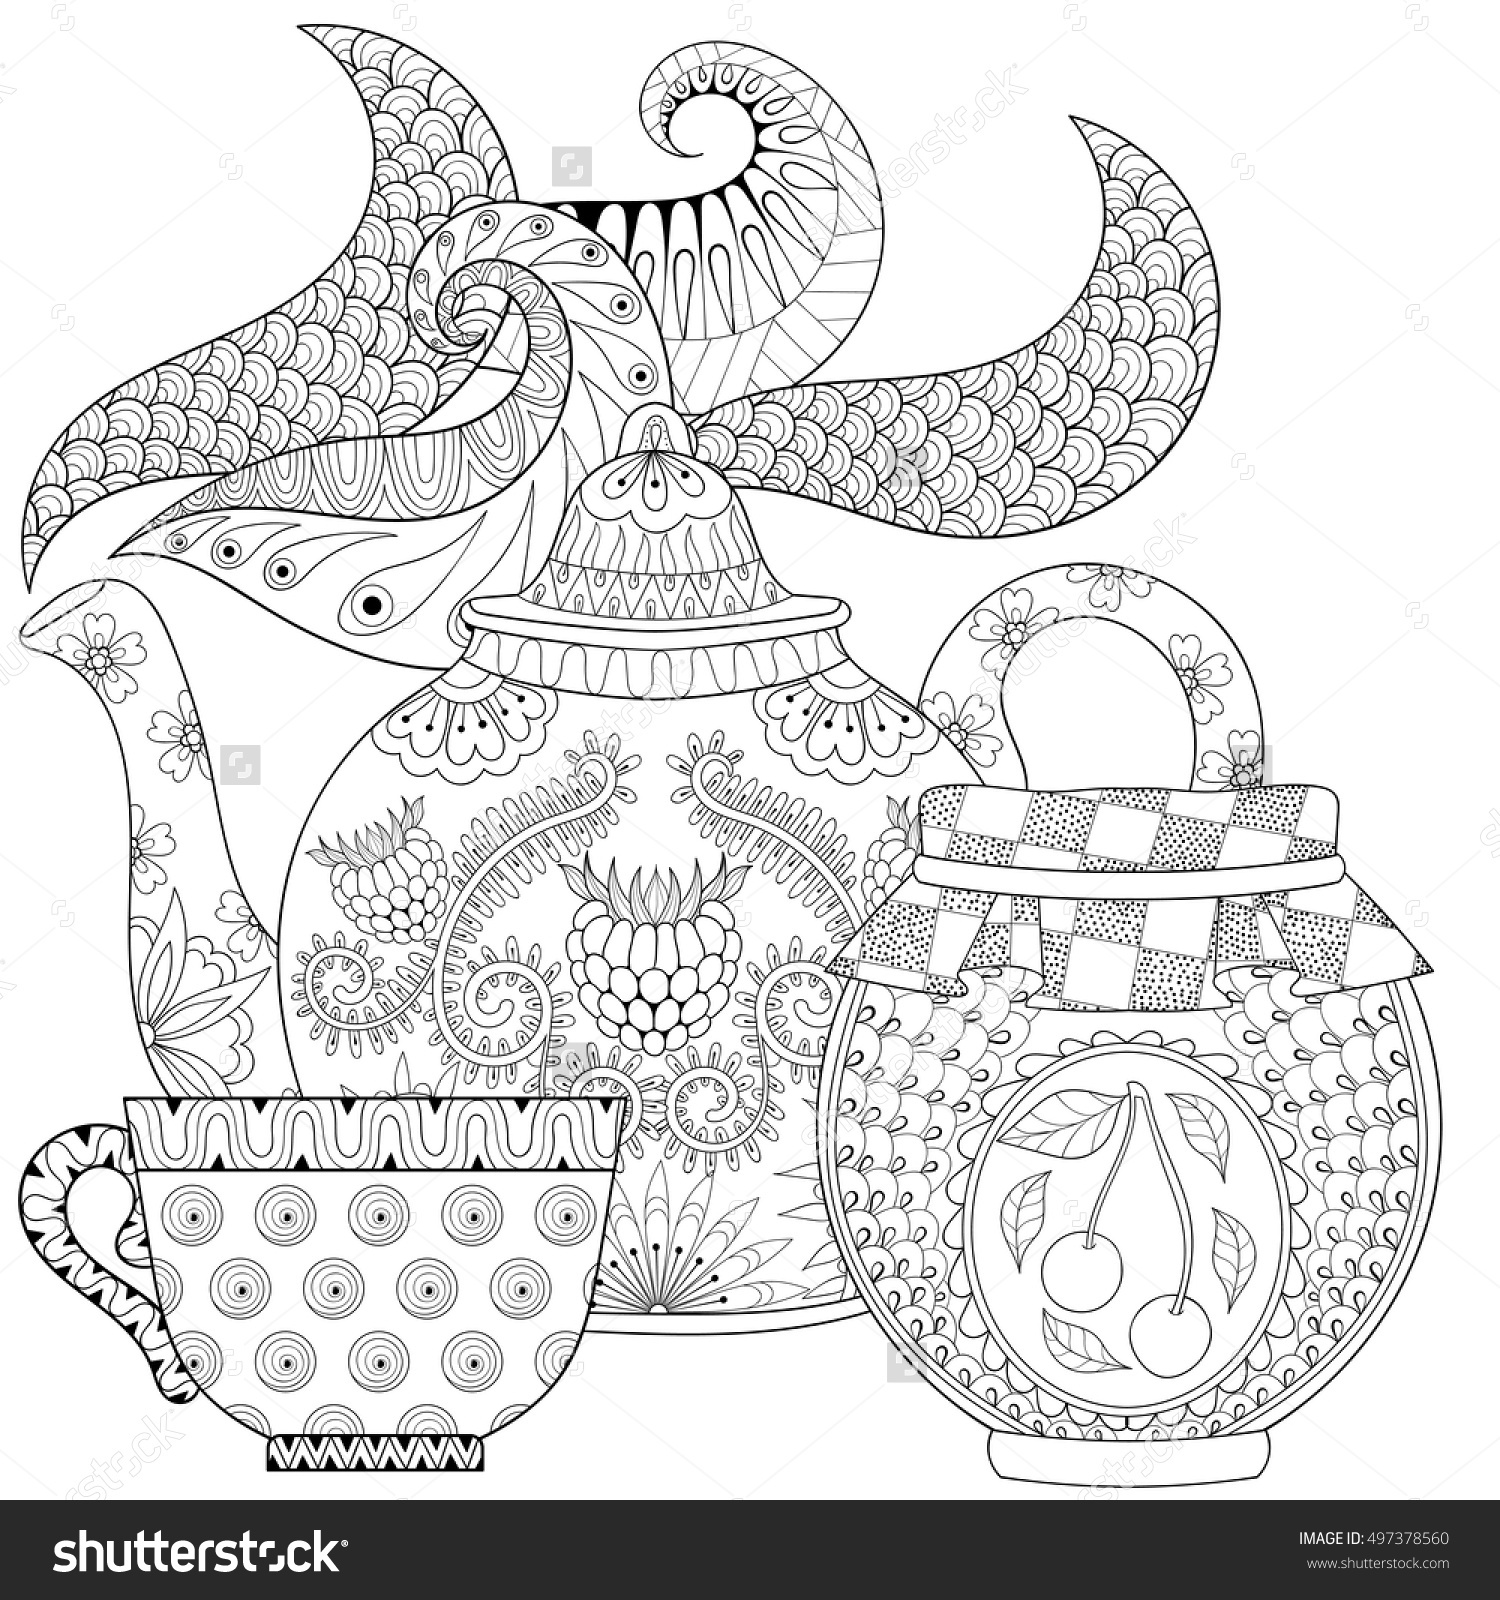 Drawn teapot zentangle Cup Adult Pages Coloring Shutterstock